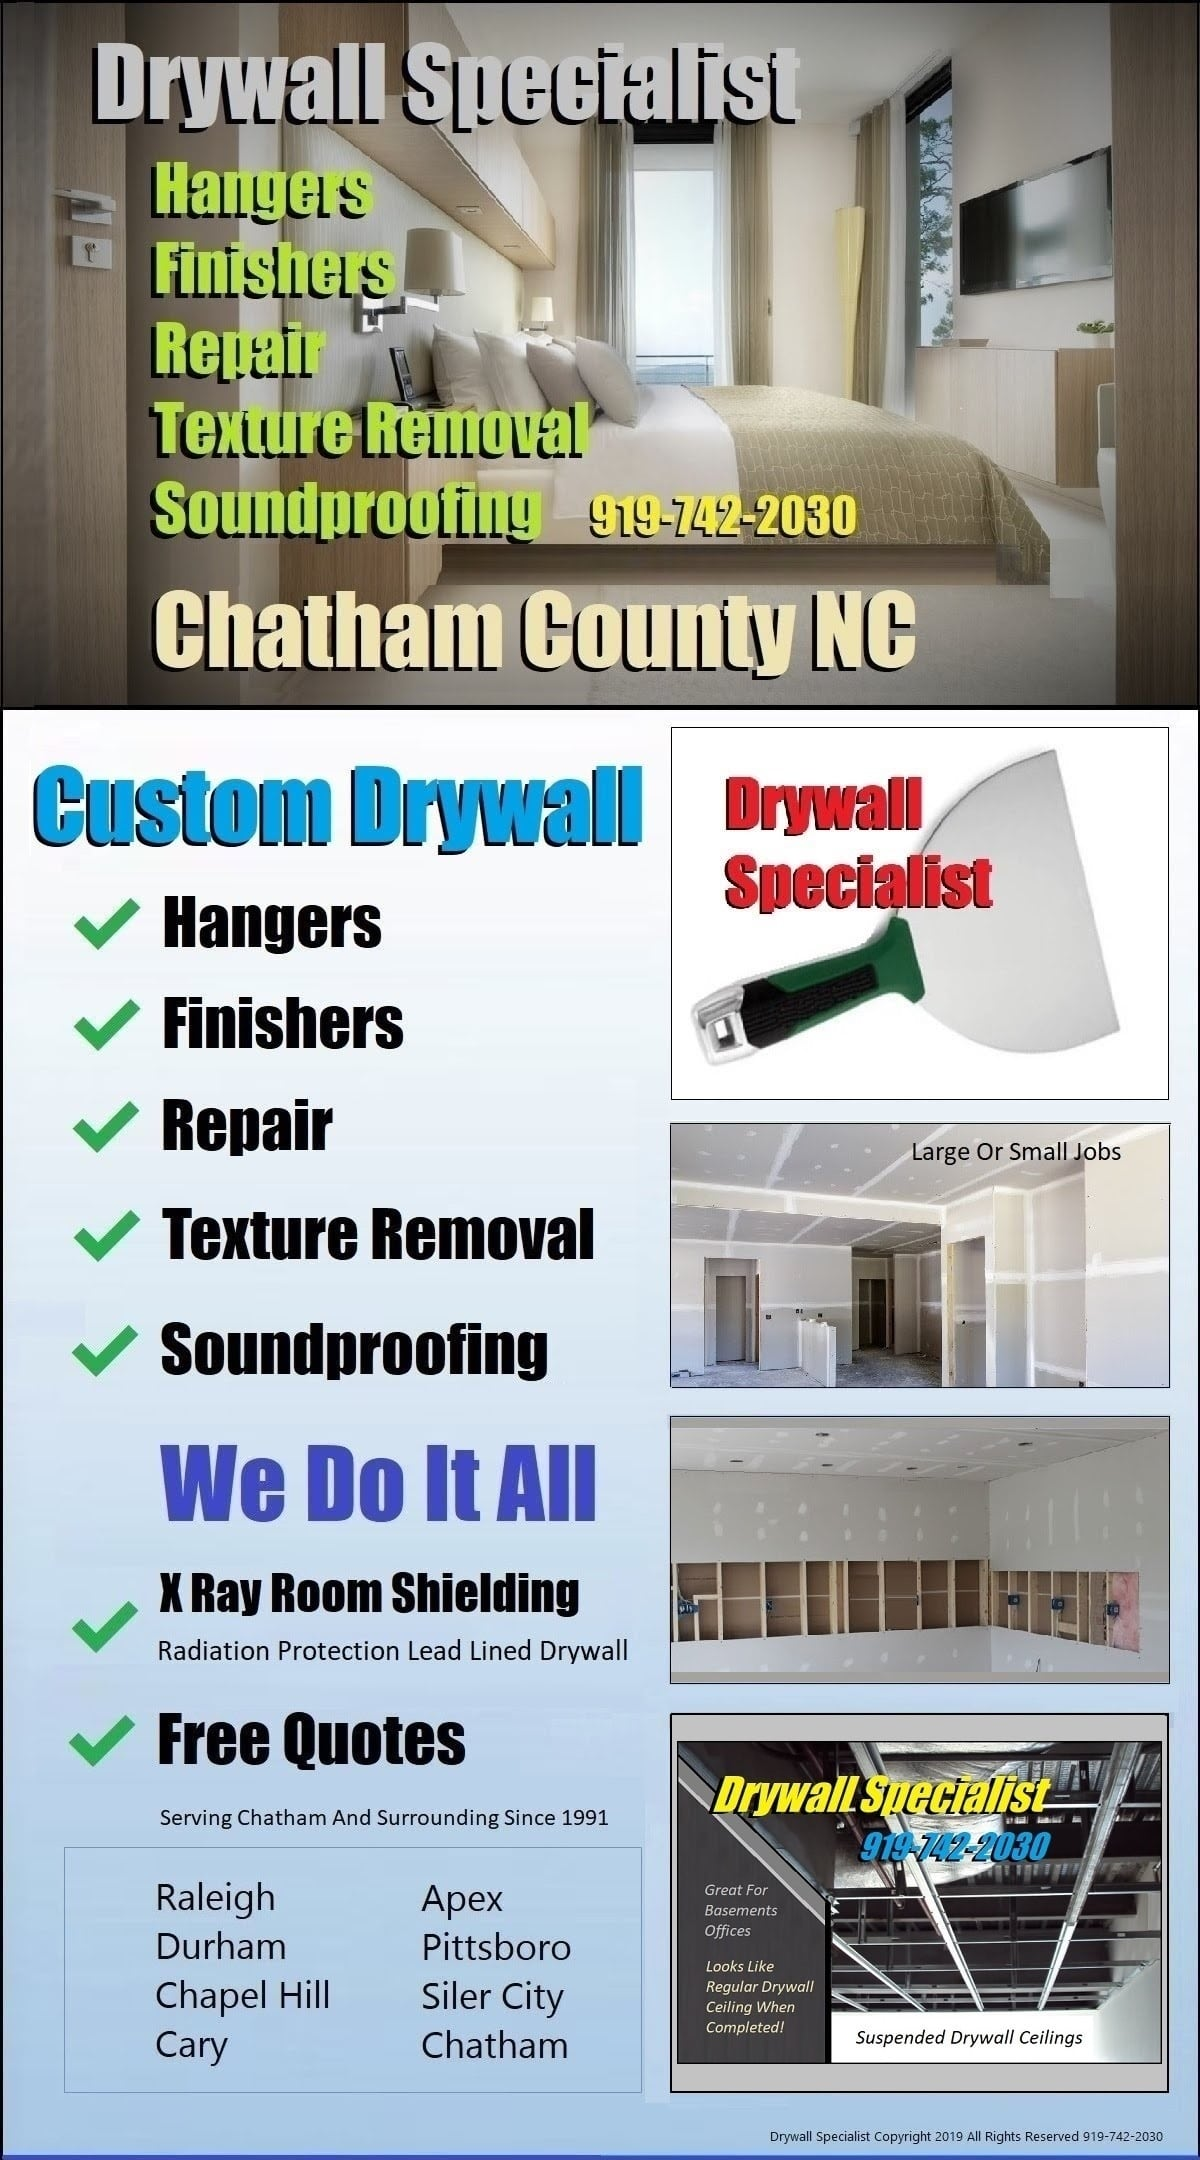 Nextdoor #DrywallTapingChapelHIll Hanger Finisher Repair And Popcorn Texture Removal Soundproofing Contractor | North Carolina